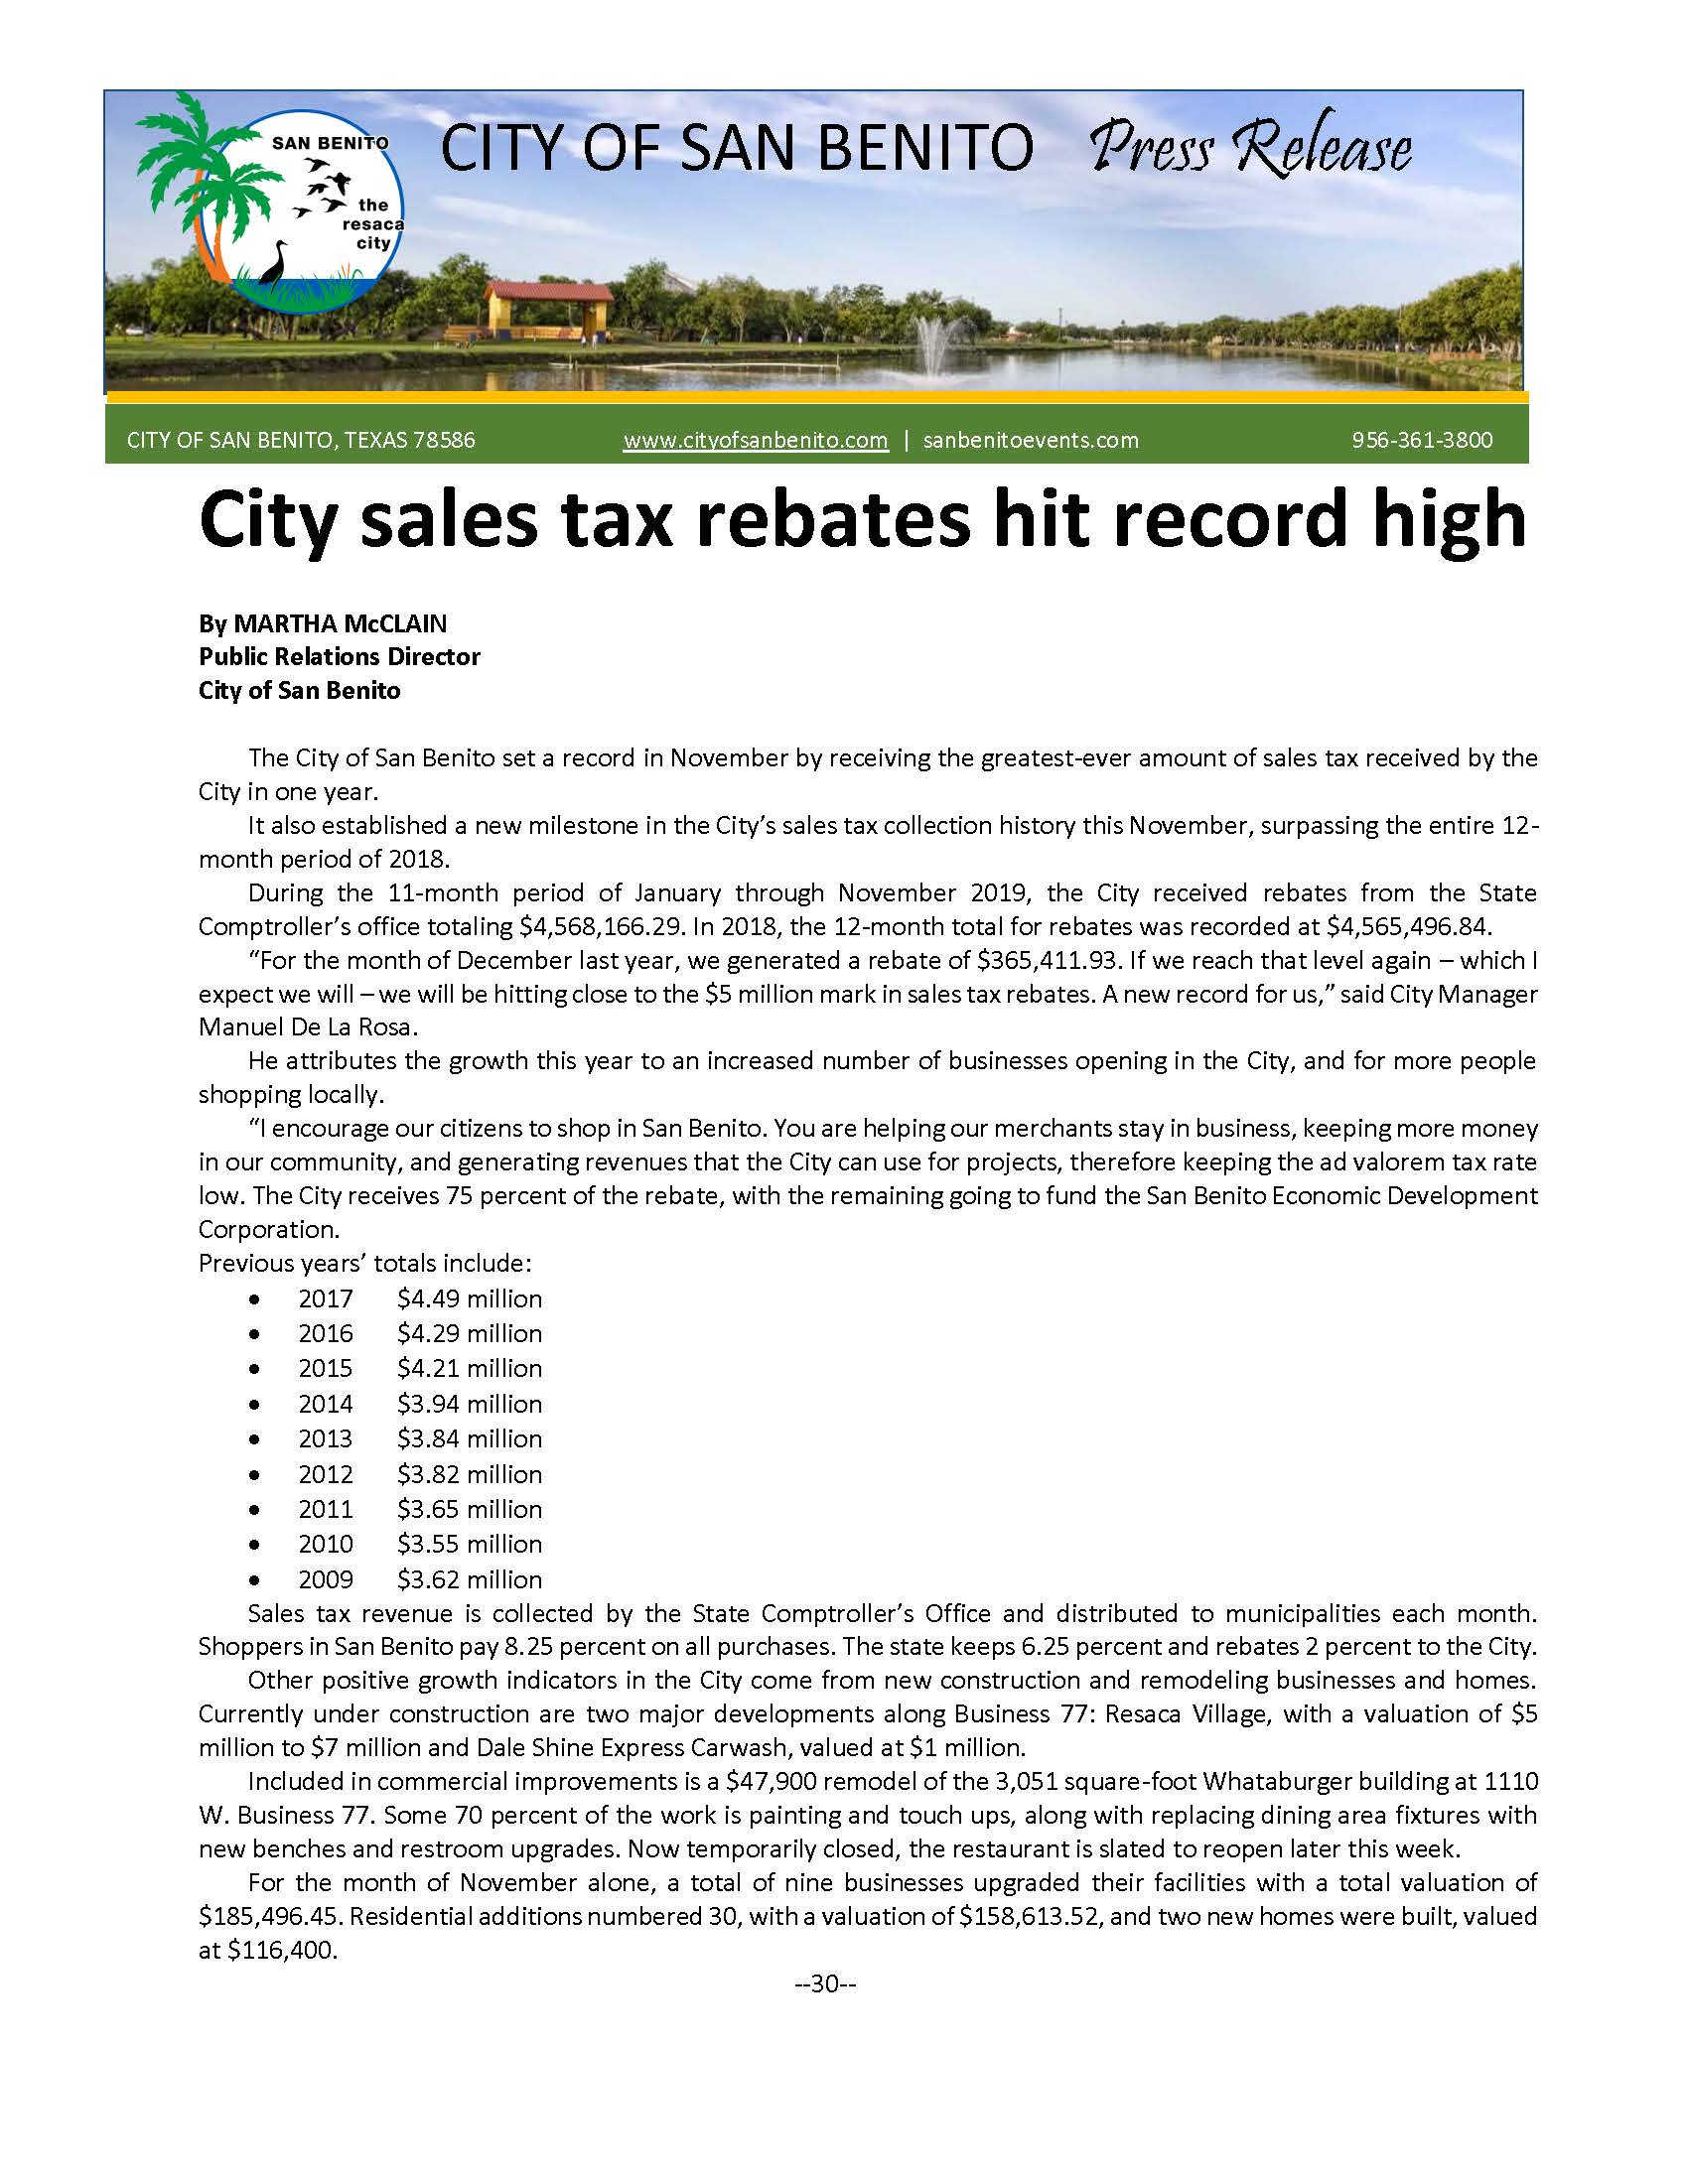 City sales tax rebates hit record high